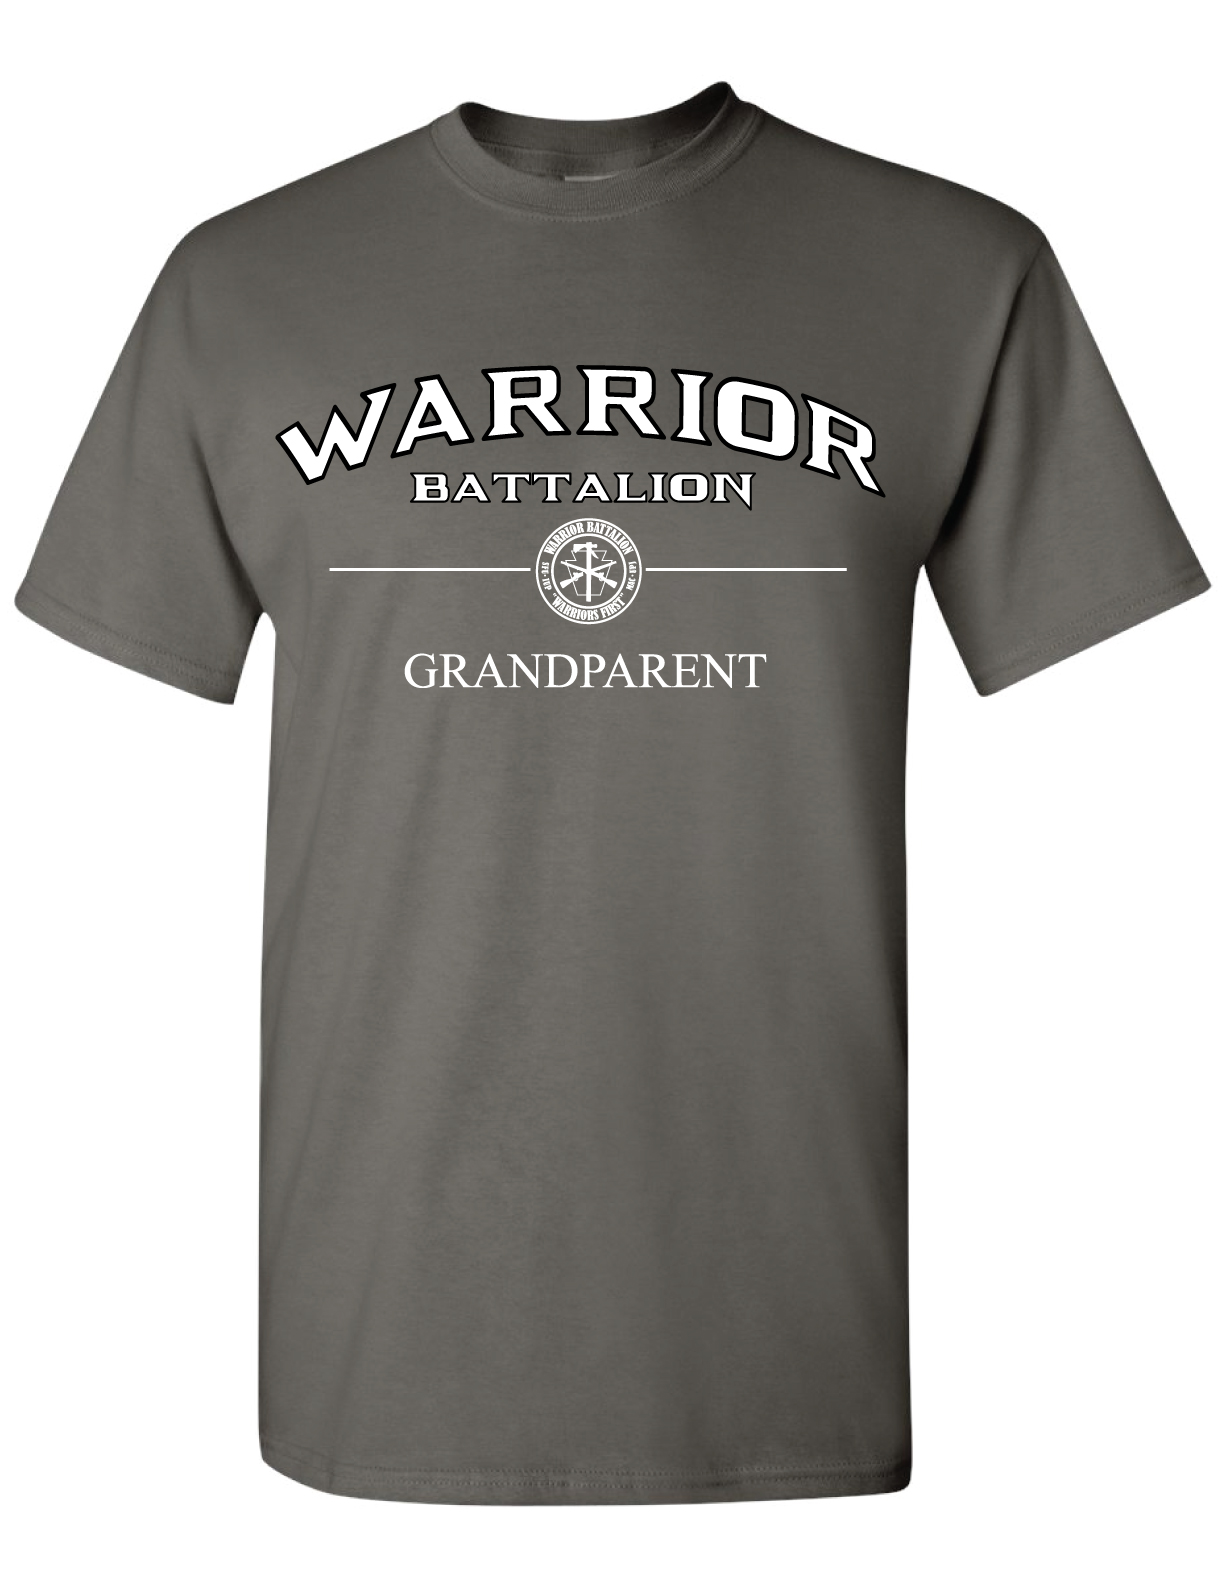 ***Clearance Sale***T-Shirt, Gray (Grandparent)